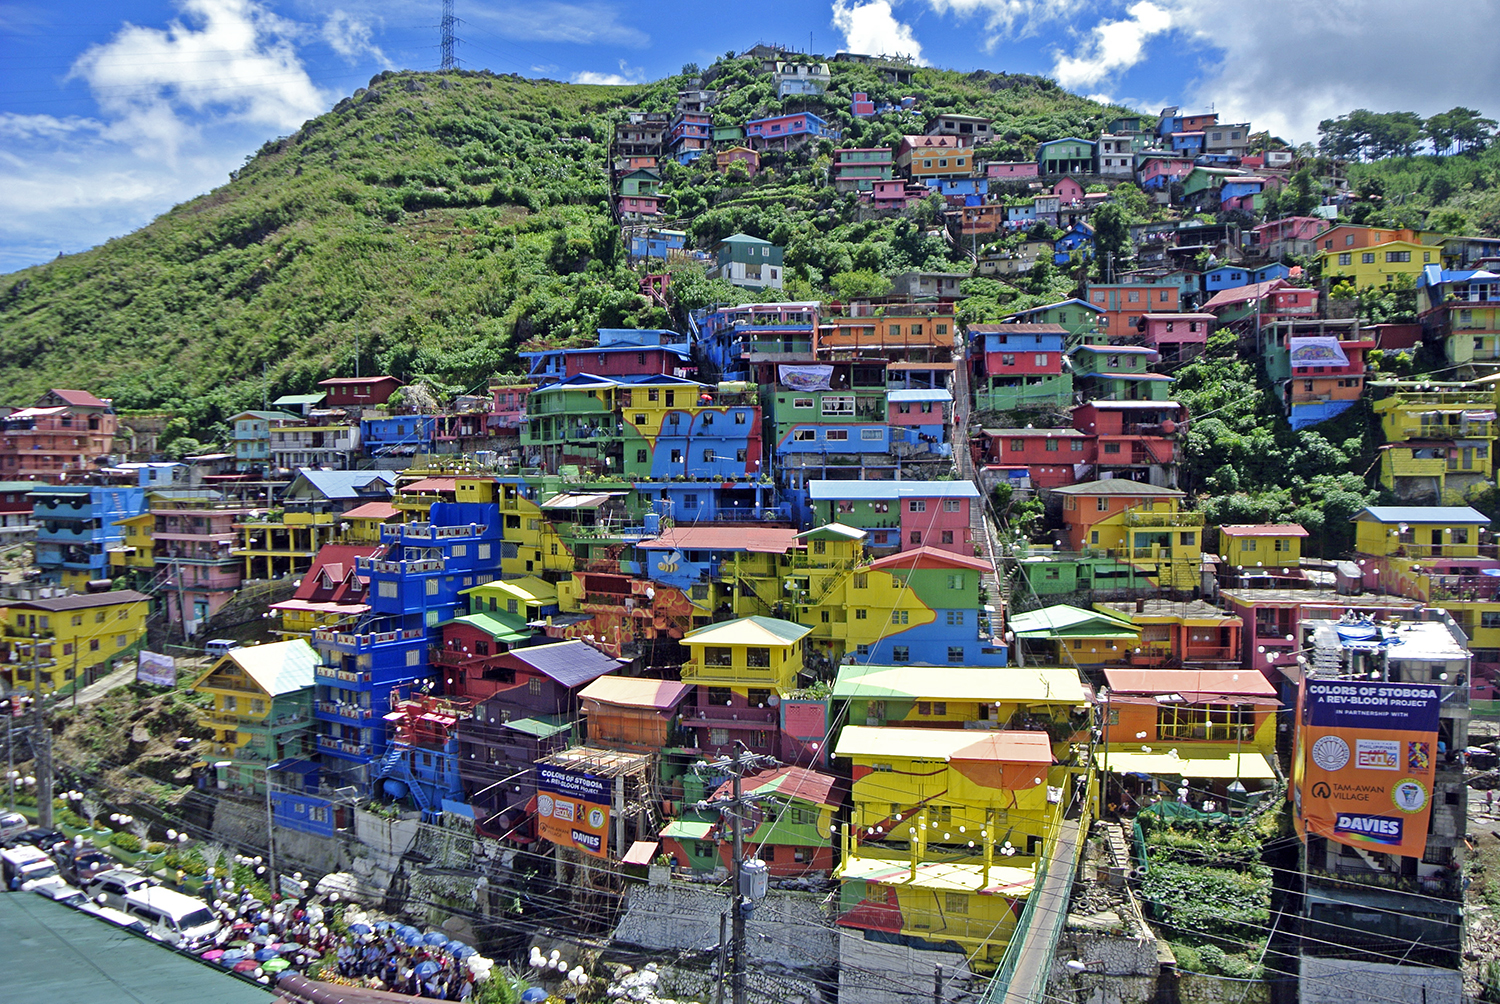 Look La Trinidad Houses Turn Into Gigantic Colorful Mural